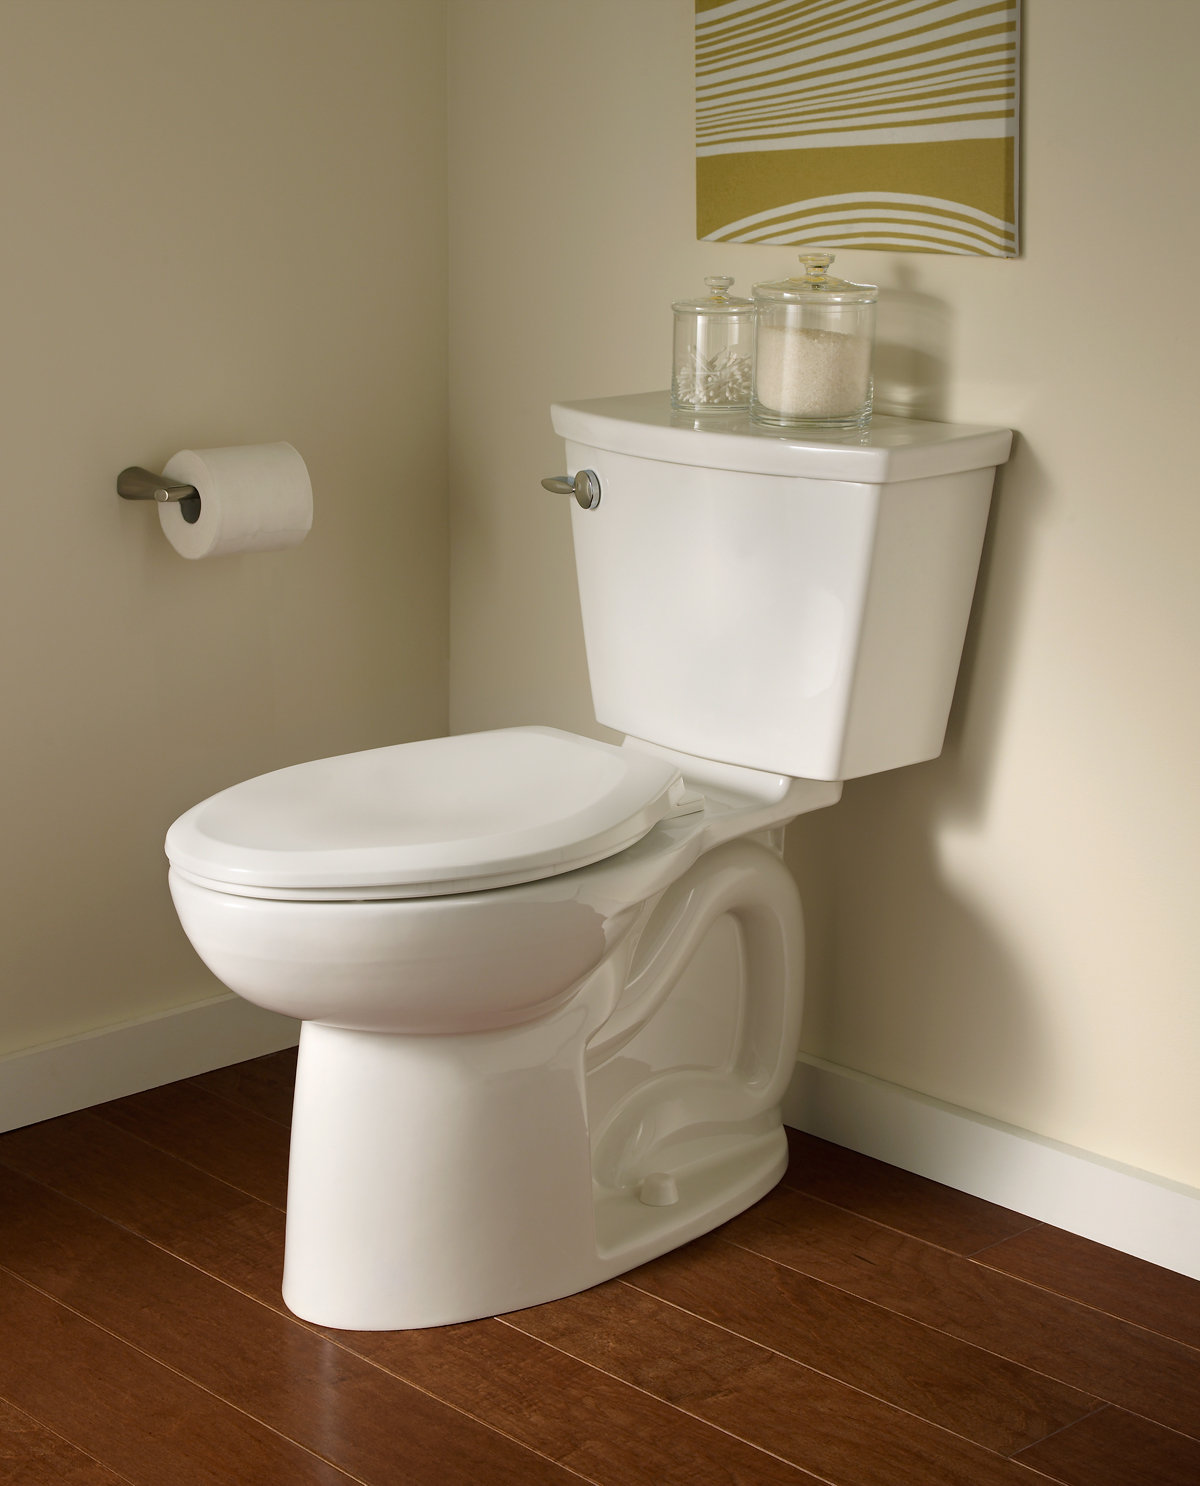 Toilet : ... Cadet 3 Right Height FloWise Elongated Toilet, Linen: Home Improvement